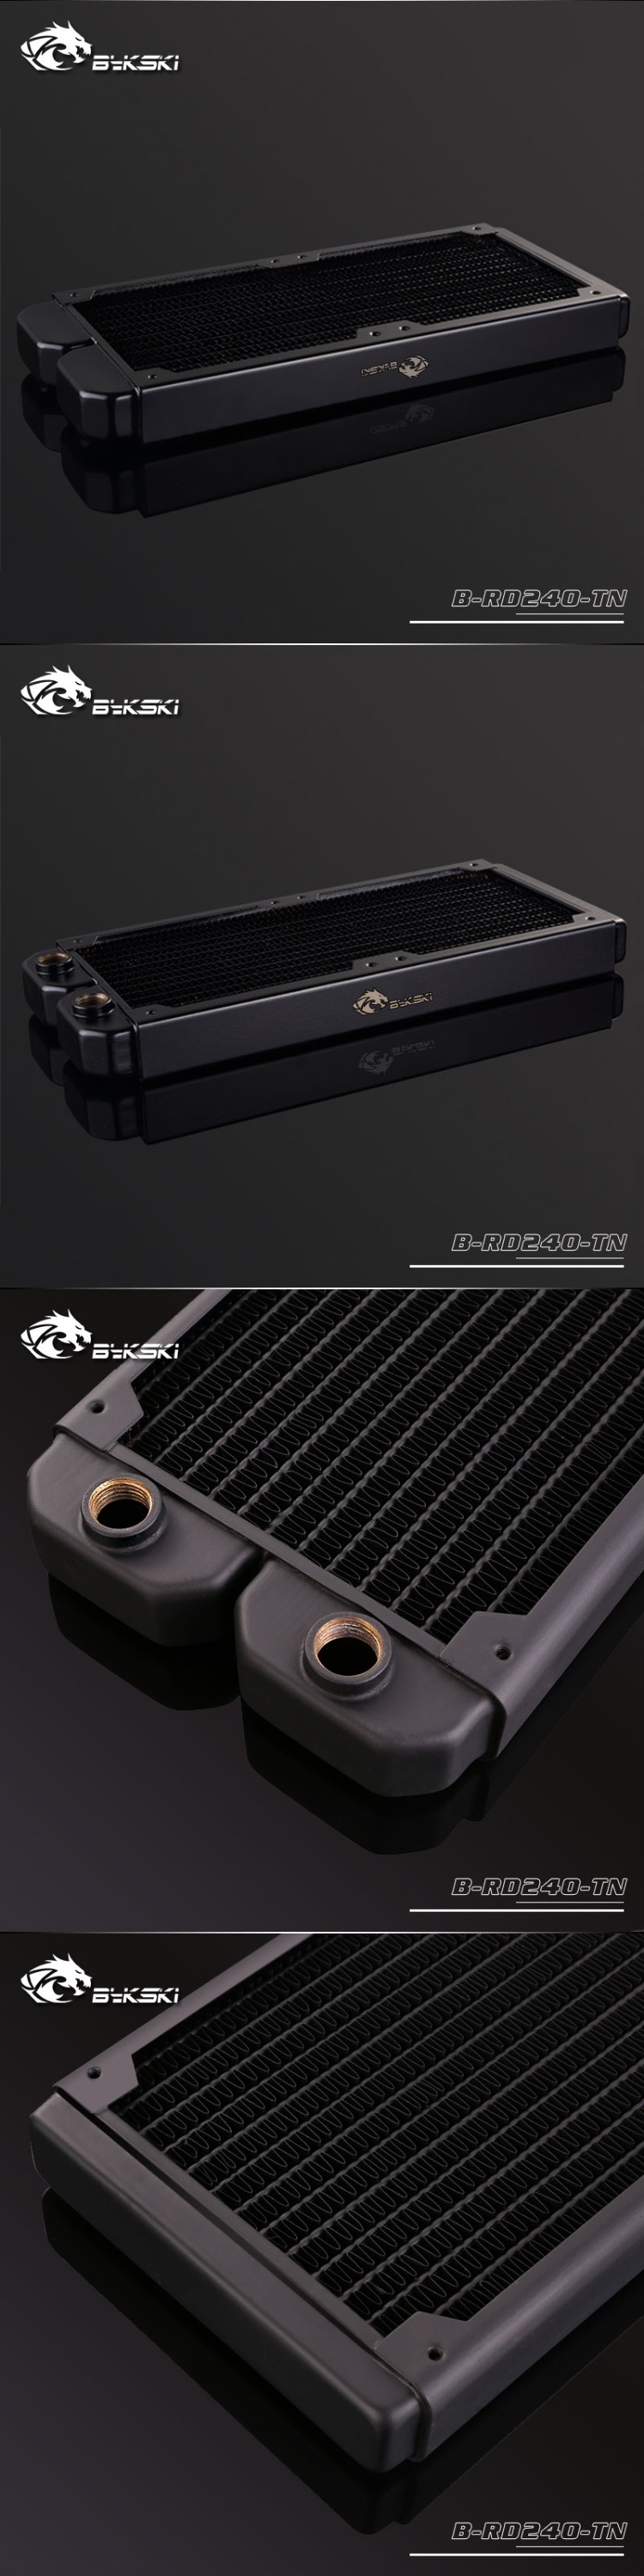 A large marketing image providing additional information about the product Bykski 240mm Radiator - Black - Additional alt info not provided